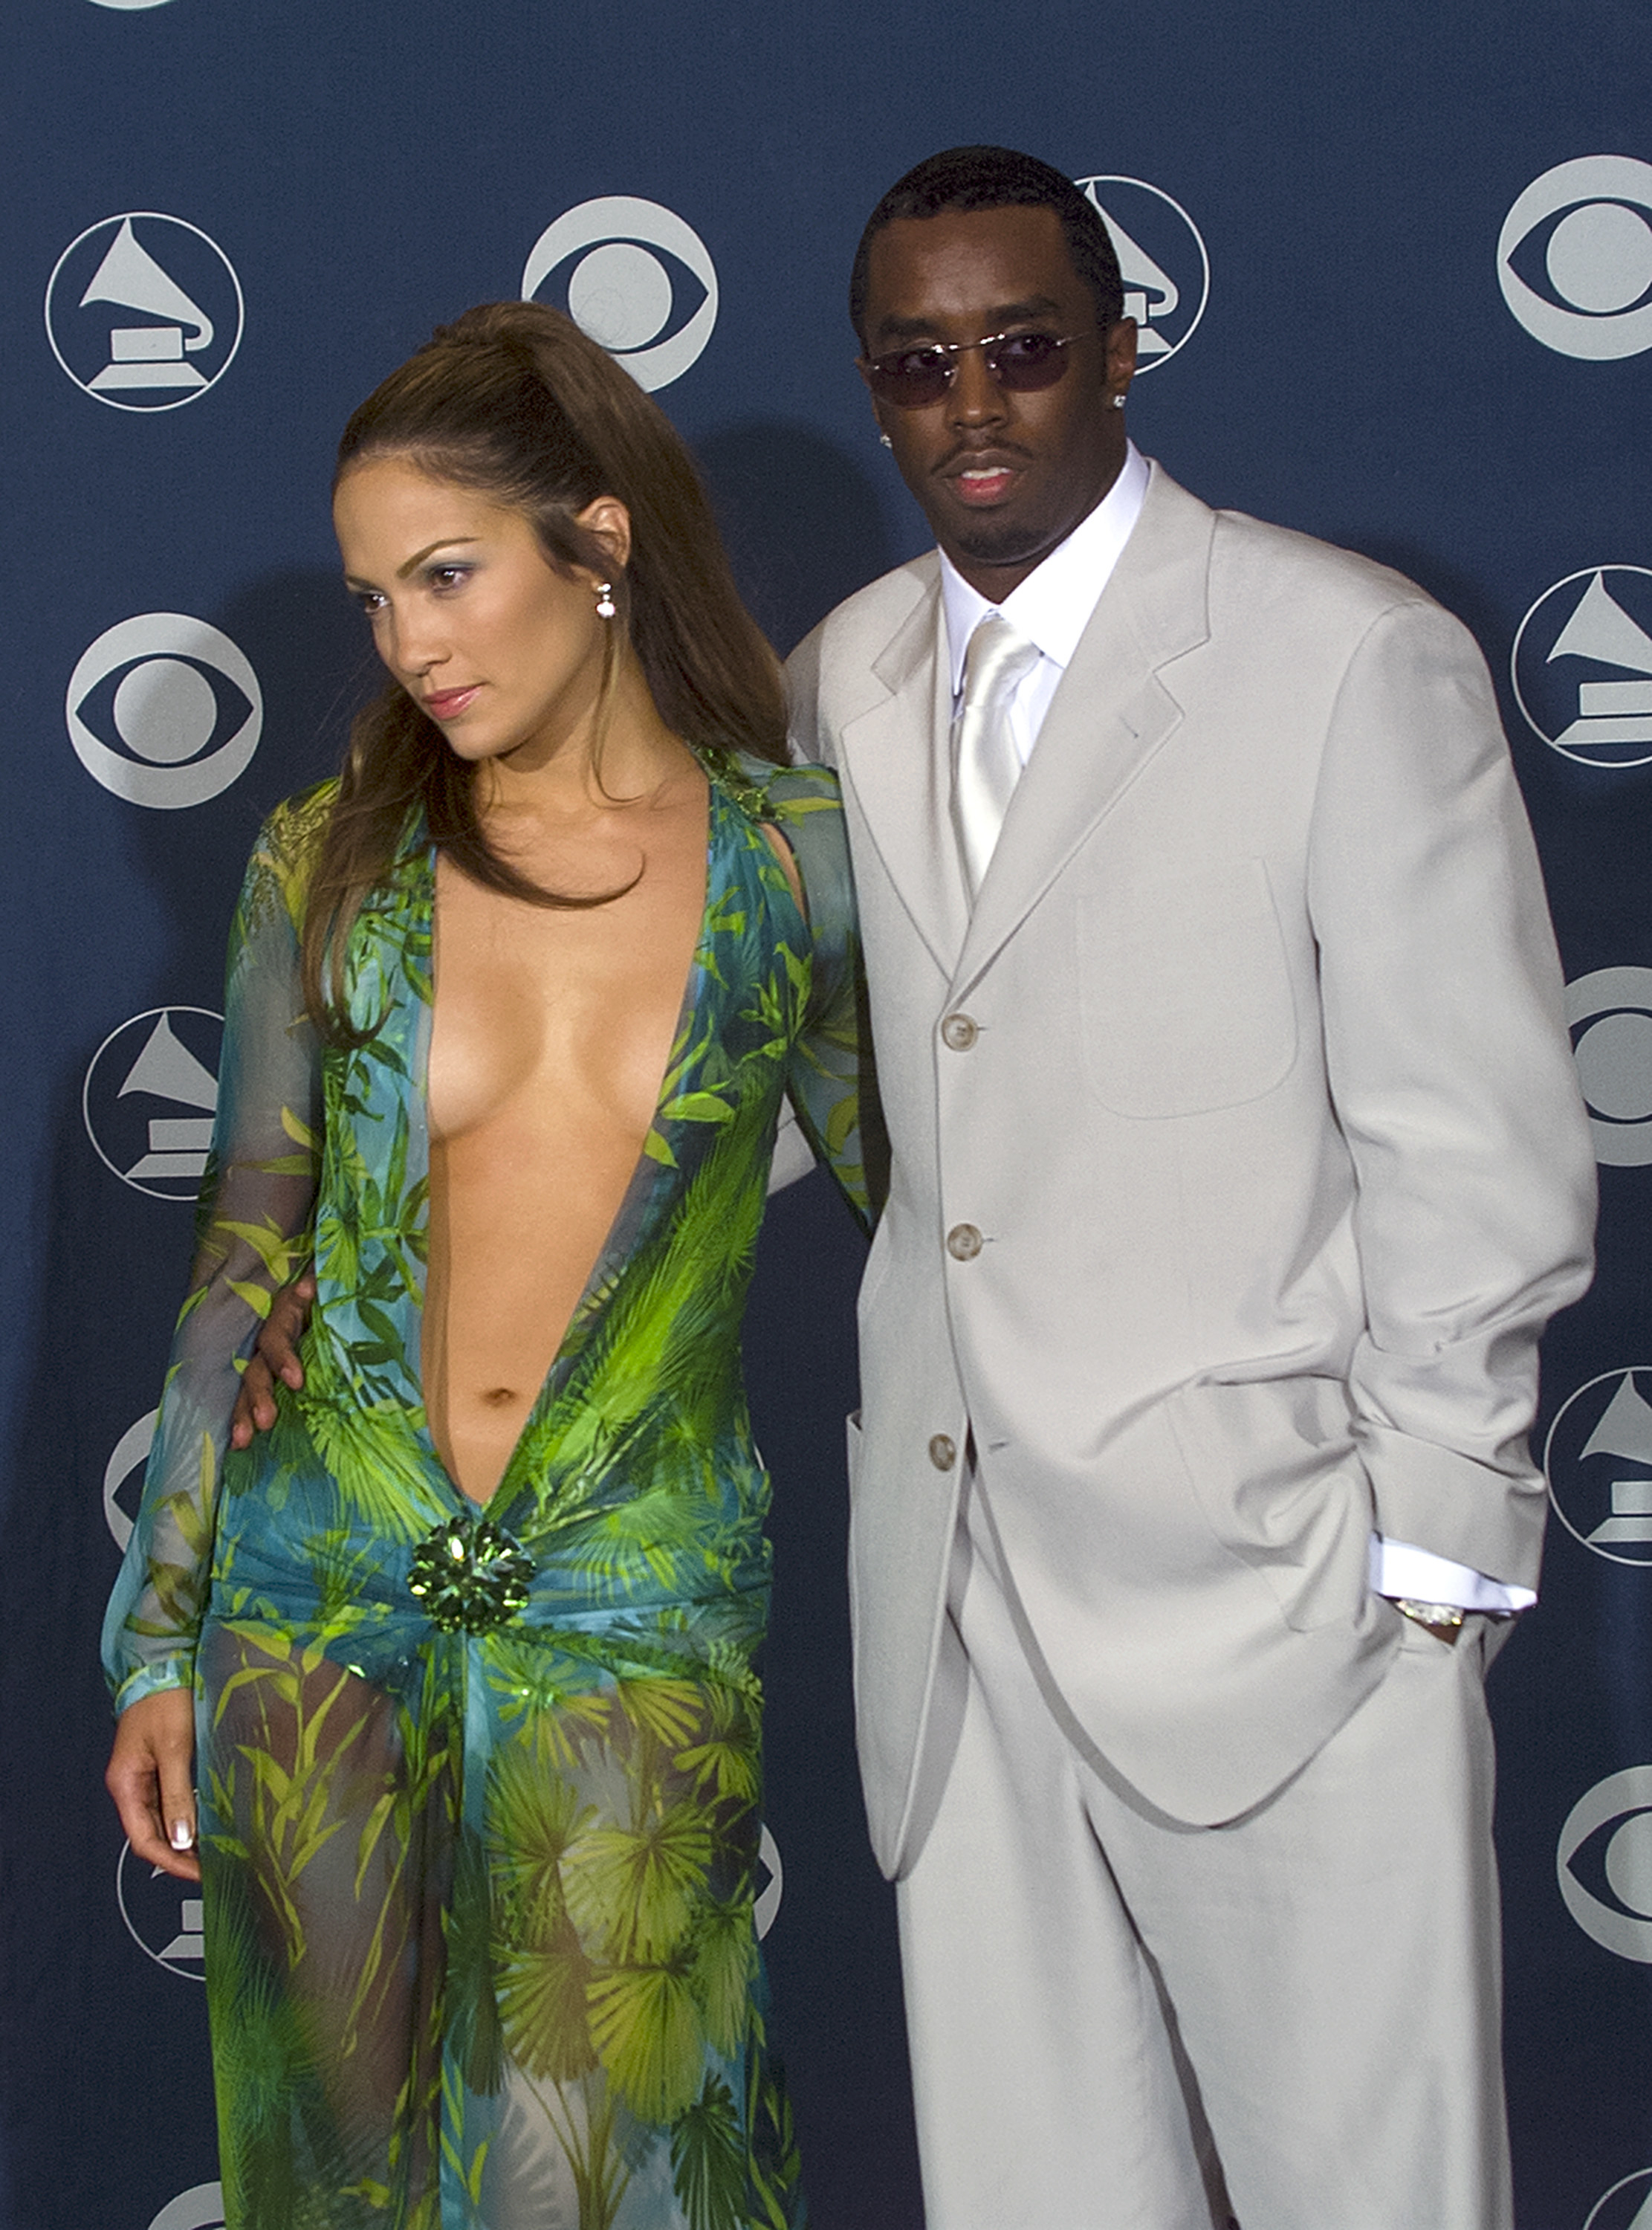 Jennifer Lopez and Puff Daddy at the Grammy Awards together